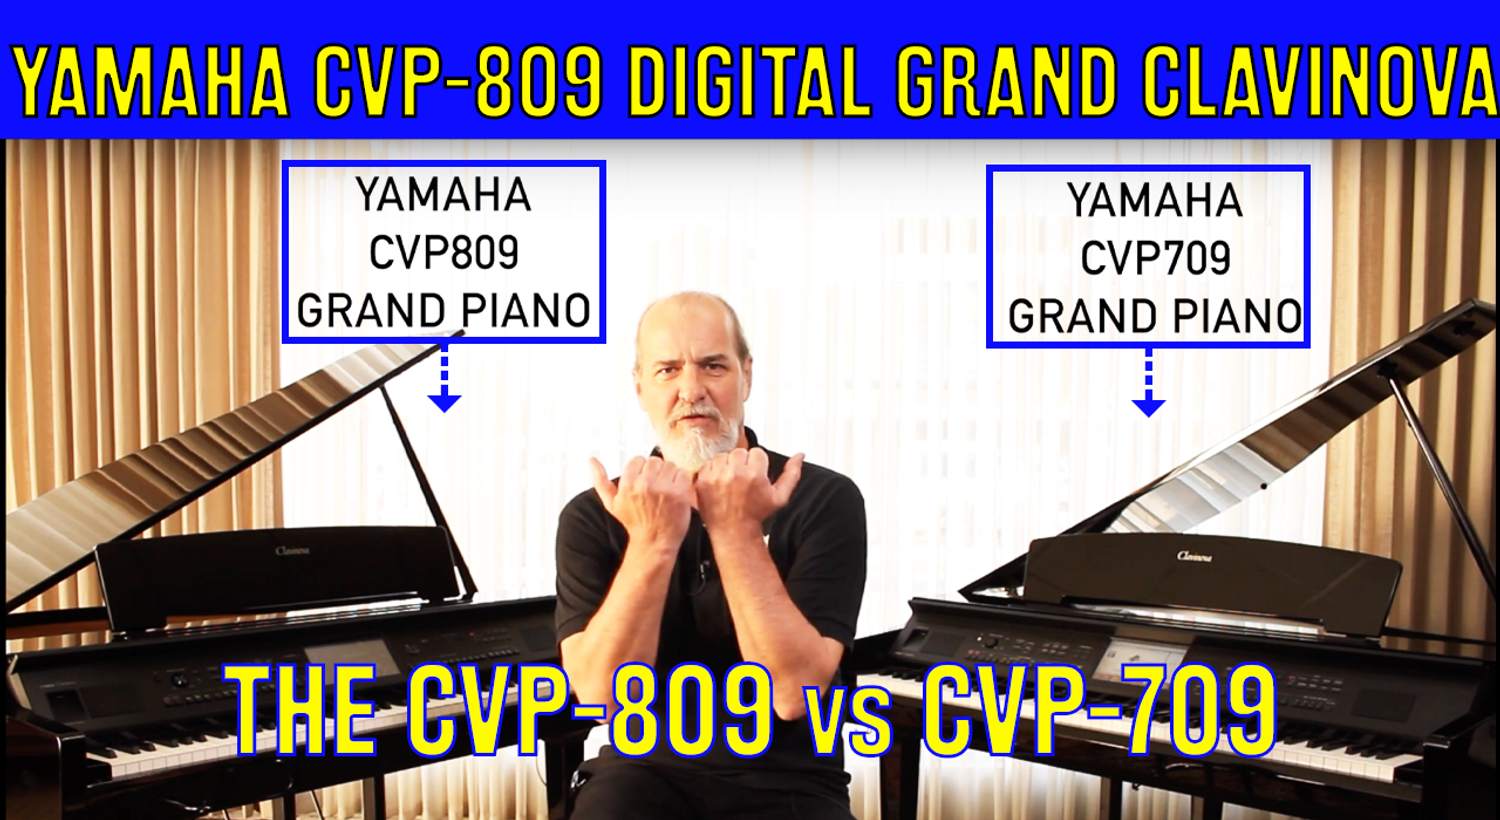 Yamaha Clavinova Grand Digital Piano CVP-809 vs CVP-709 - What's the differences?